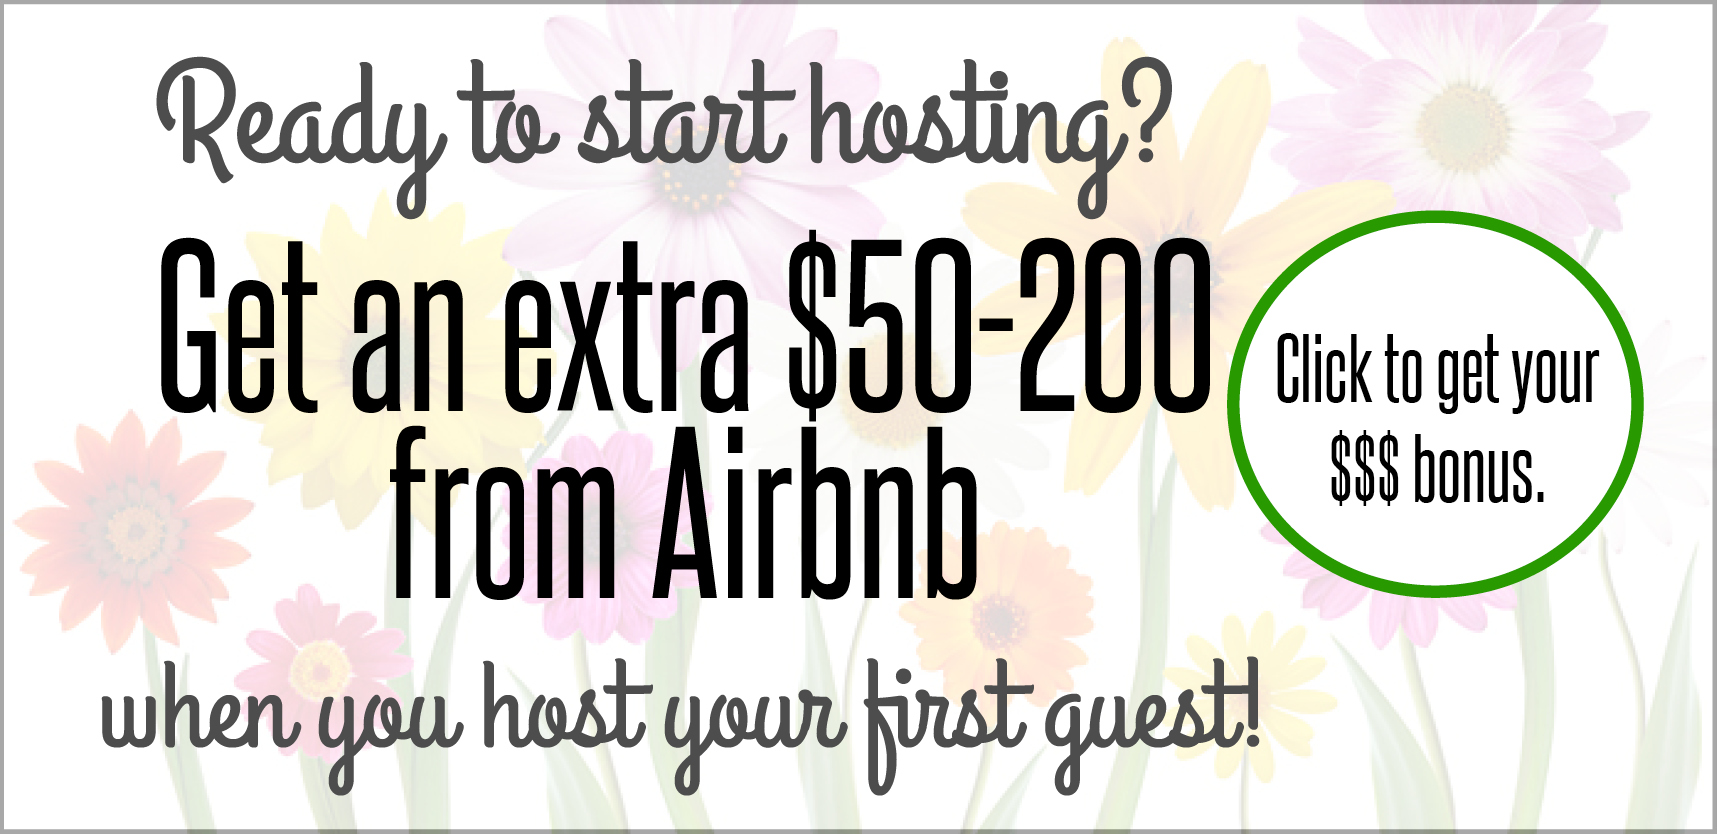 get $200 bonus from Airbnb when start hosting